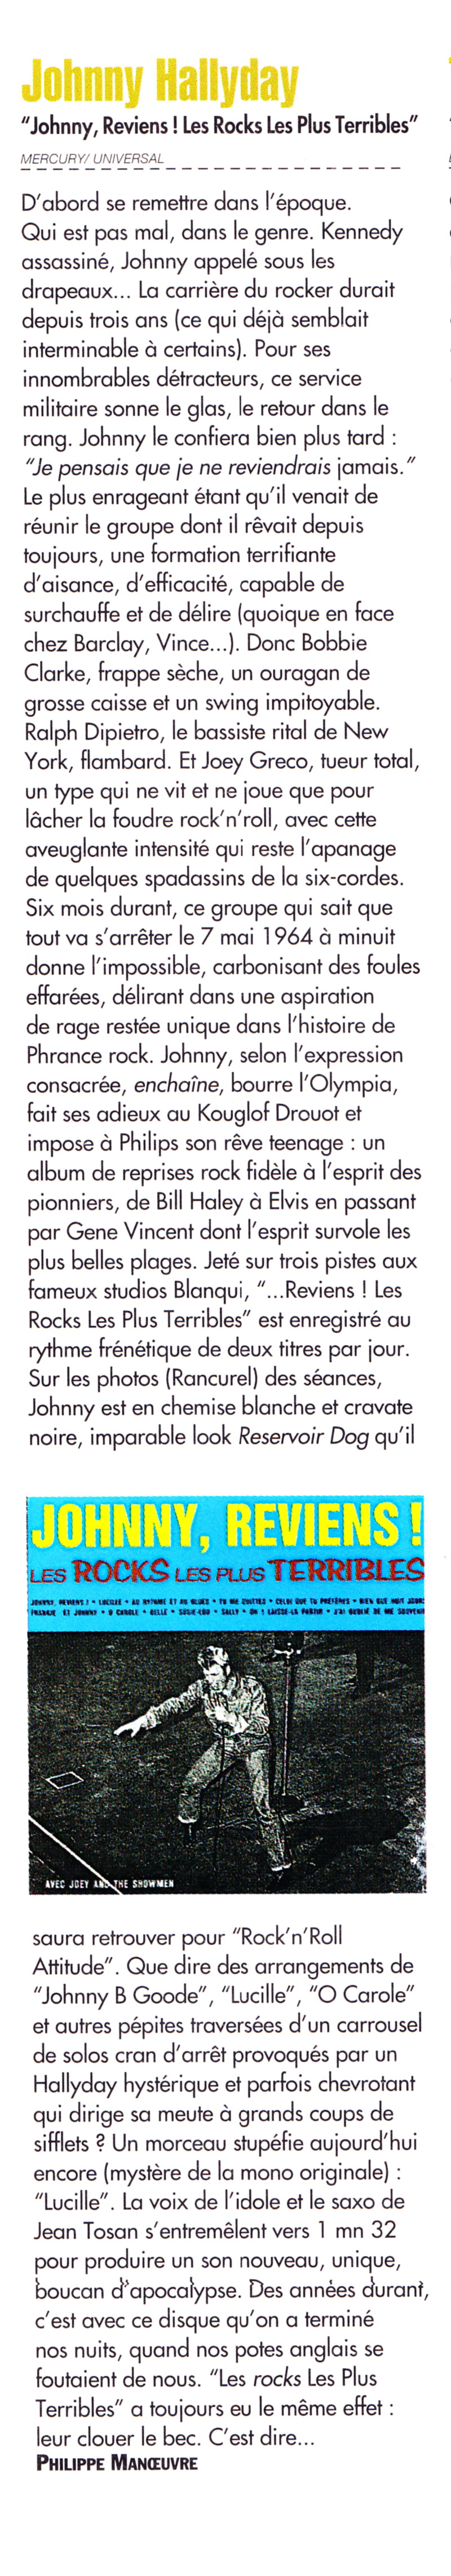 "JOEY & THE SHOWMEN, le groupe des ""ROCKS LES PLUS TERRIBLES"" (1964) de JOHNNY HALLYDAY 13110811243016724011714923"